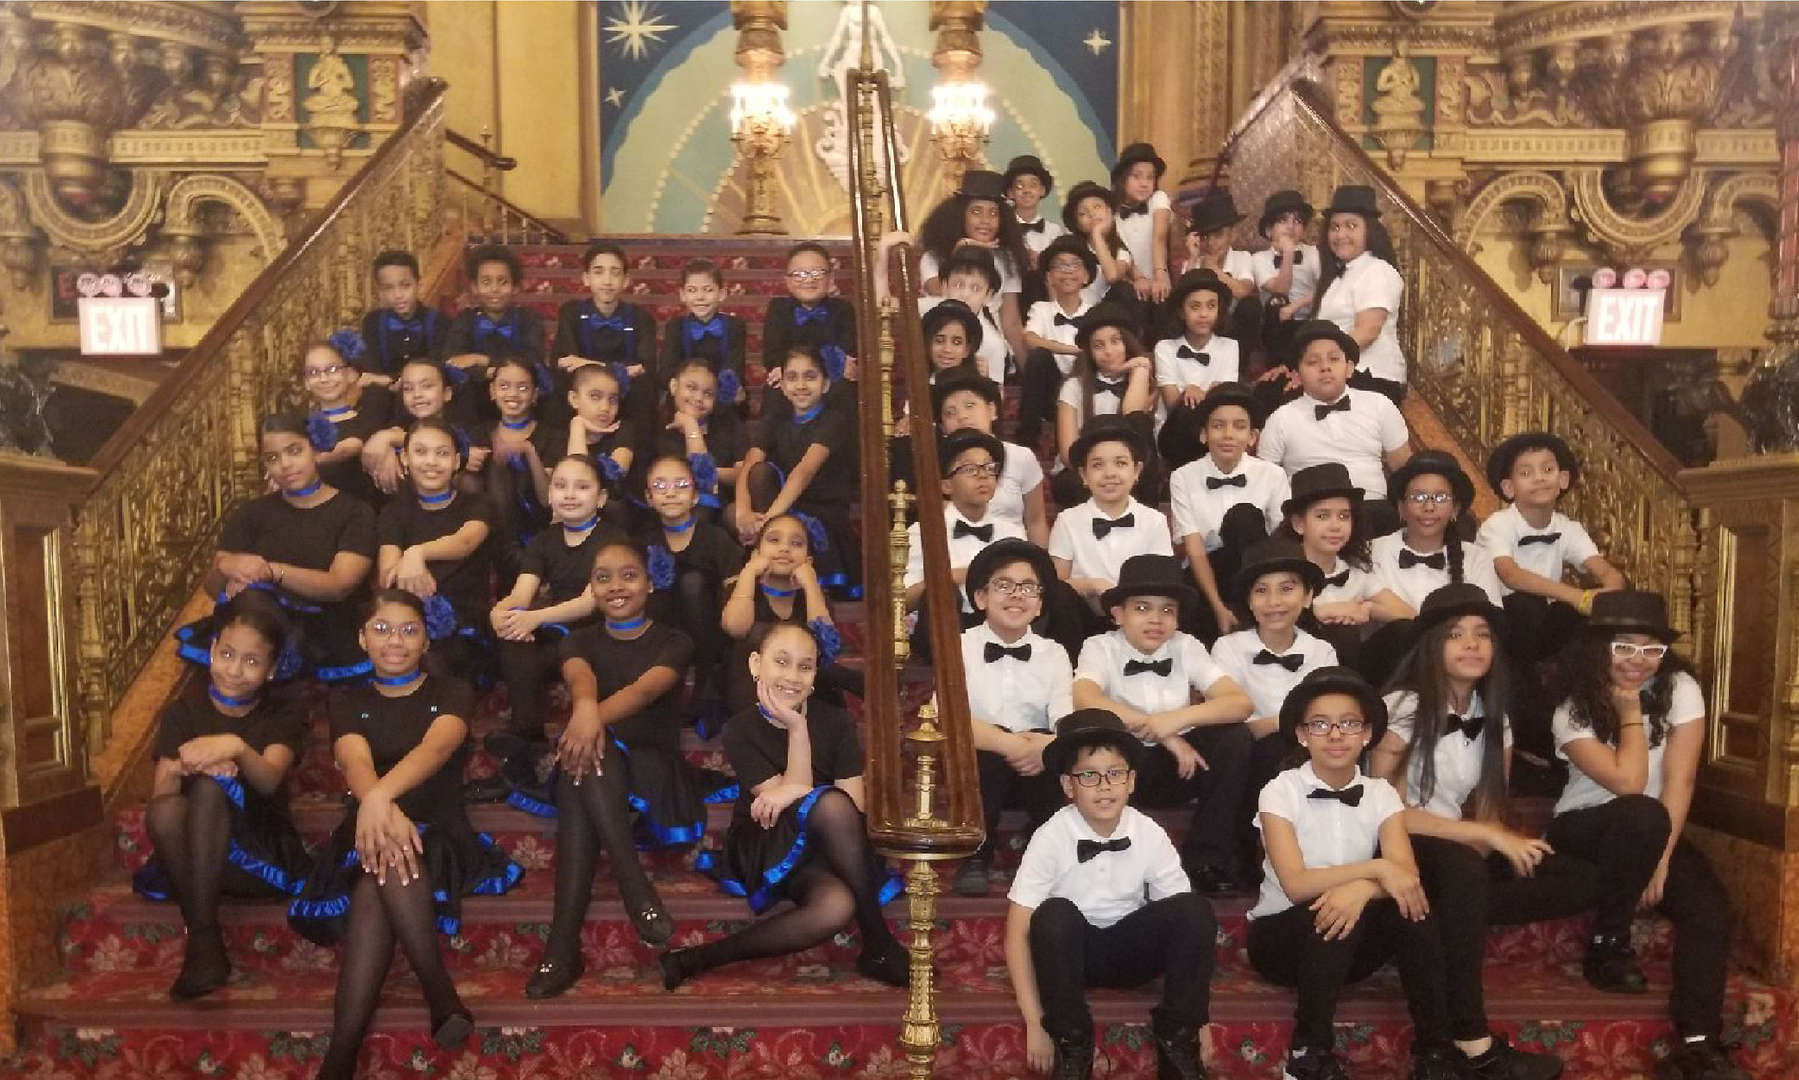 The two ballroom dancing teams dressed for a show